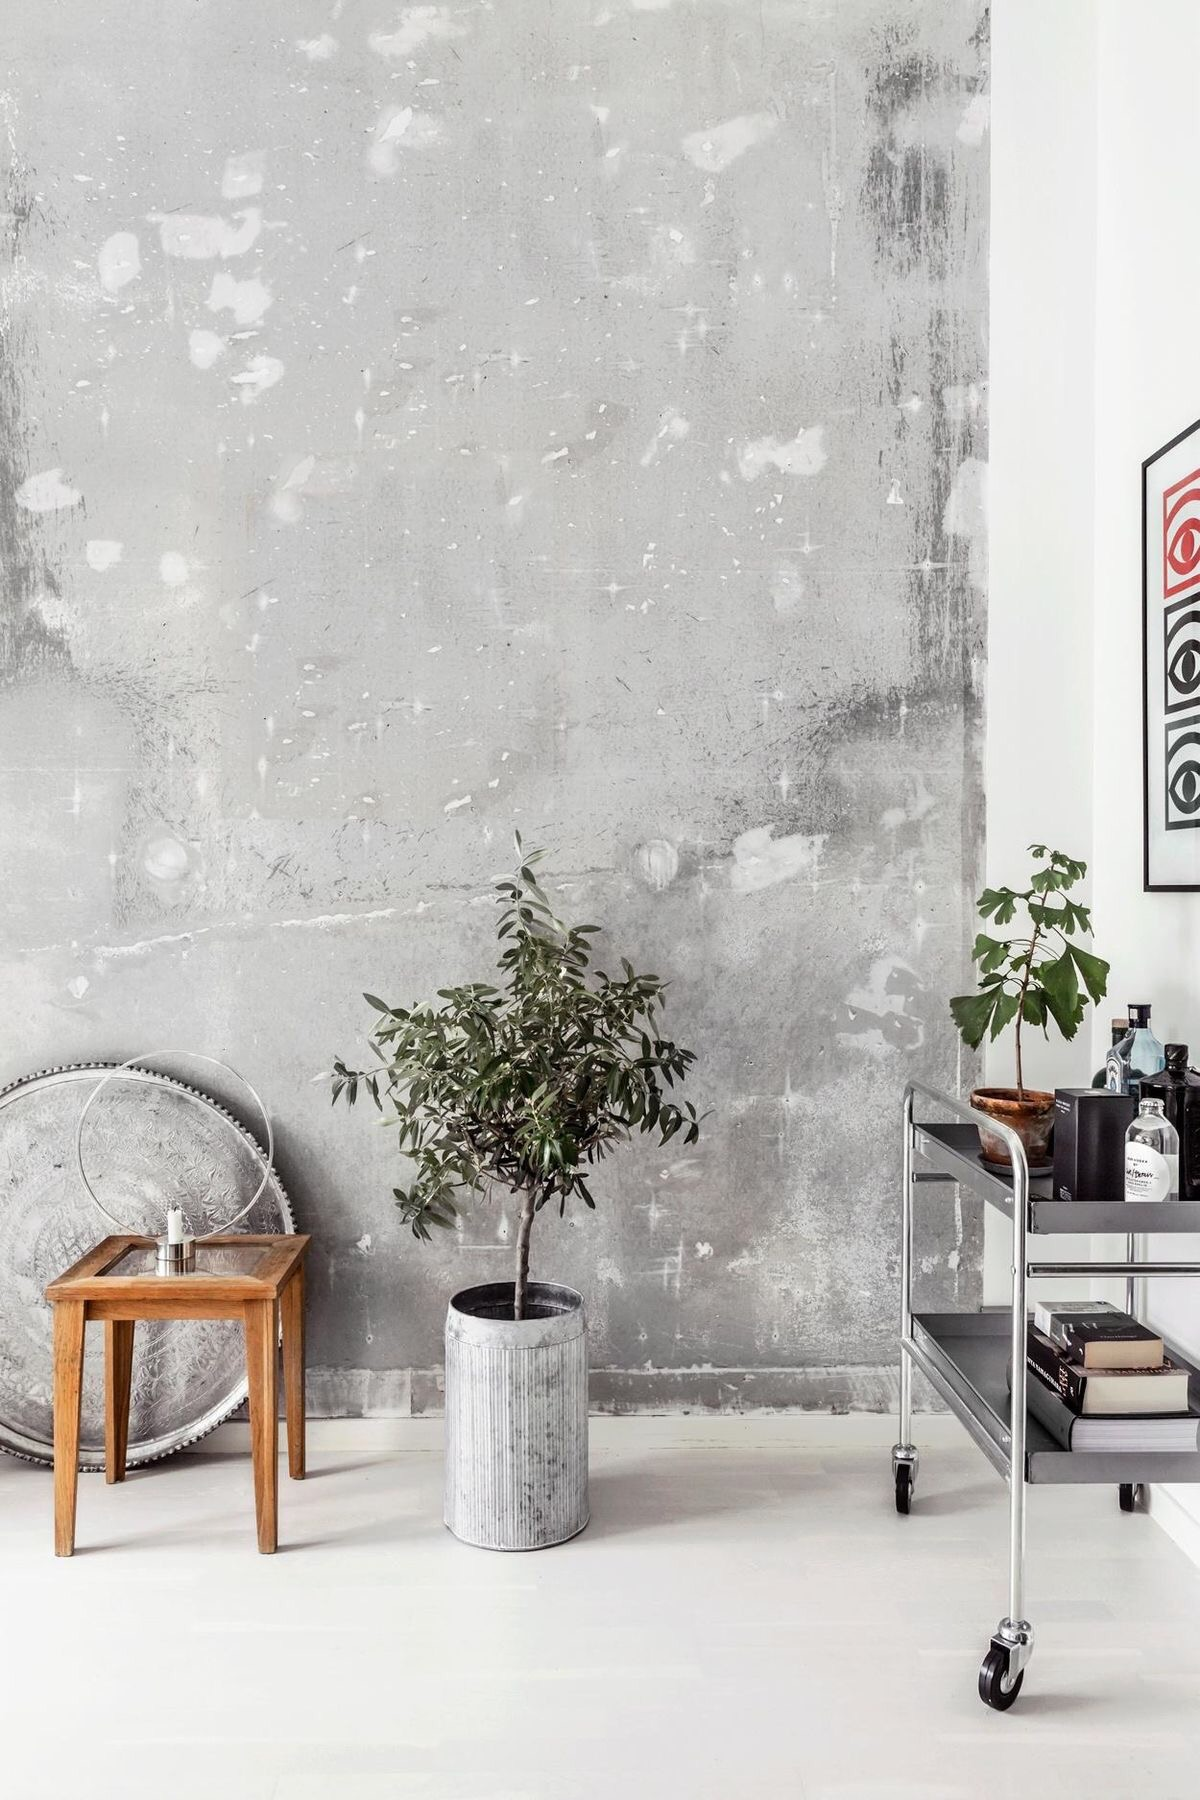 Using raw concrete on your walls helps to bring an aged and wabi sabi touch to an interior far from creating an hard and cold feeling typical of the